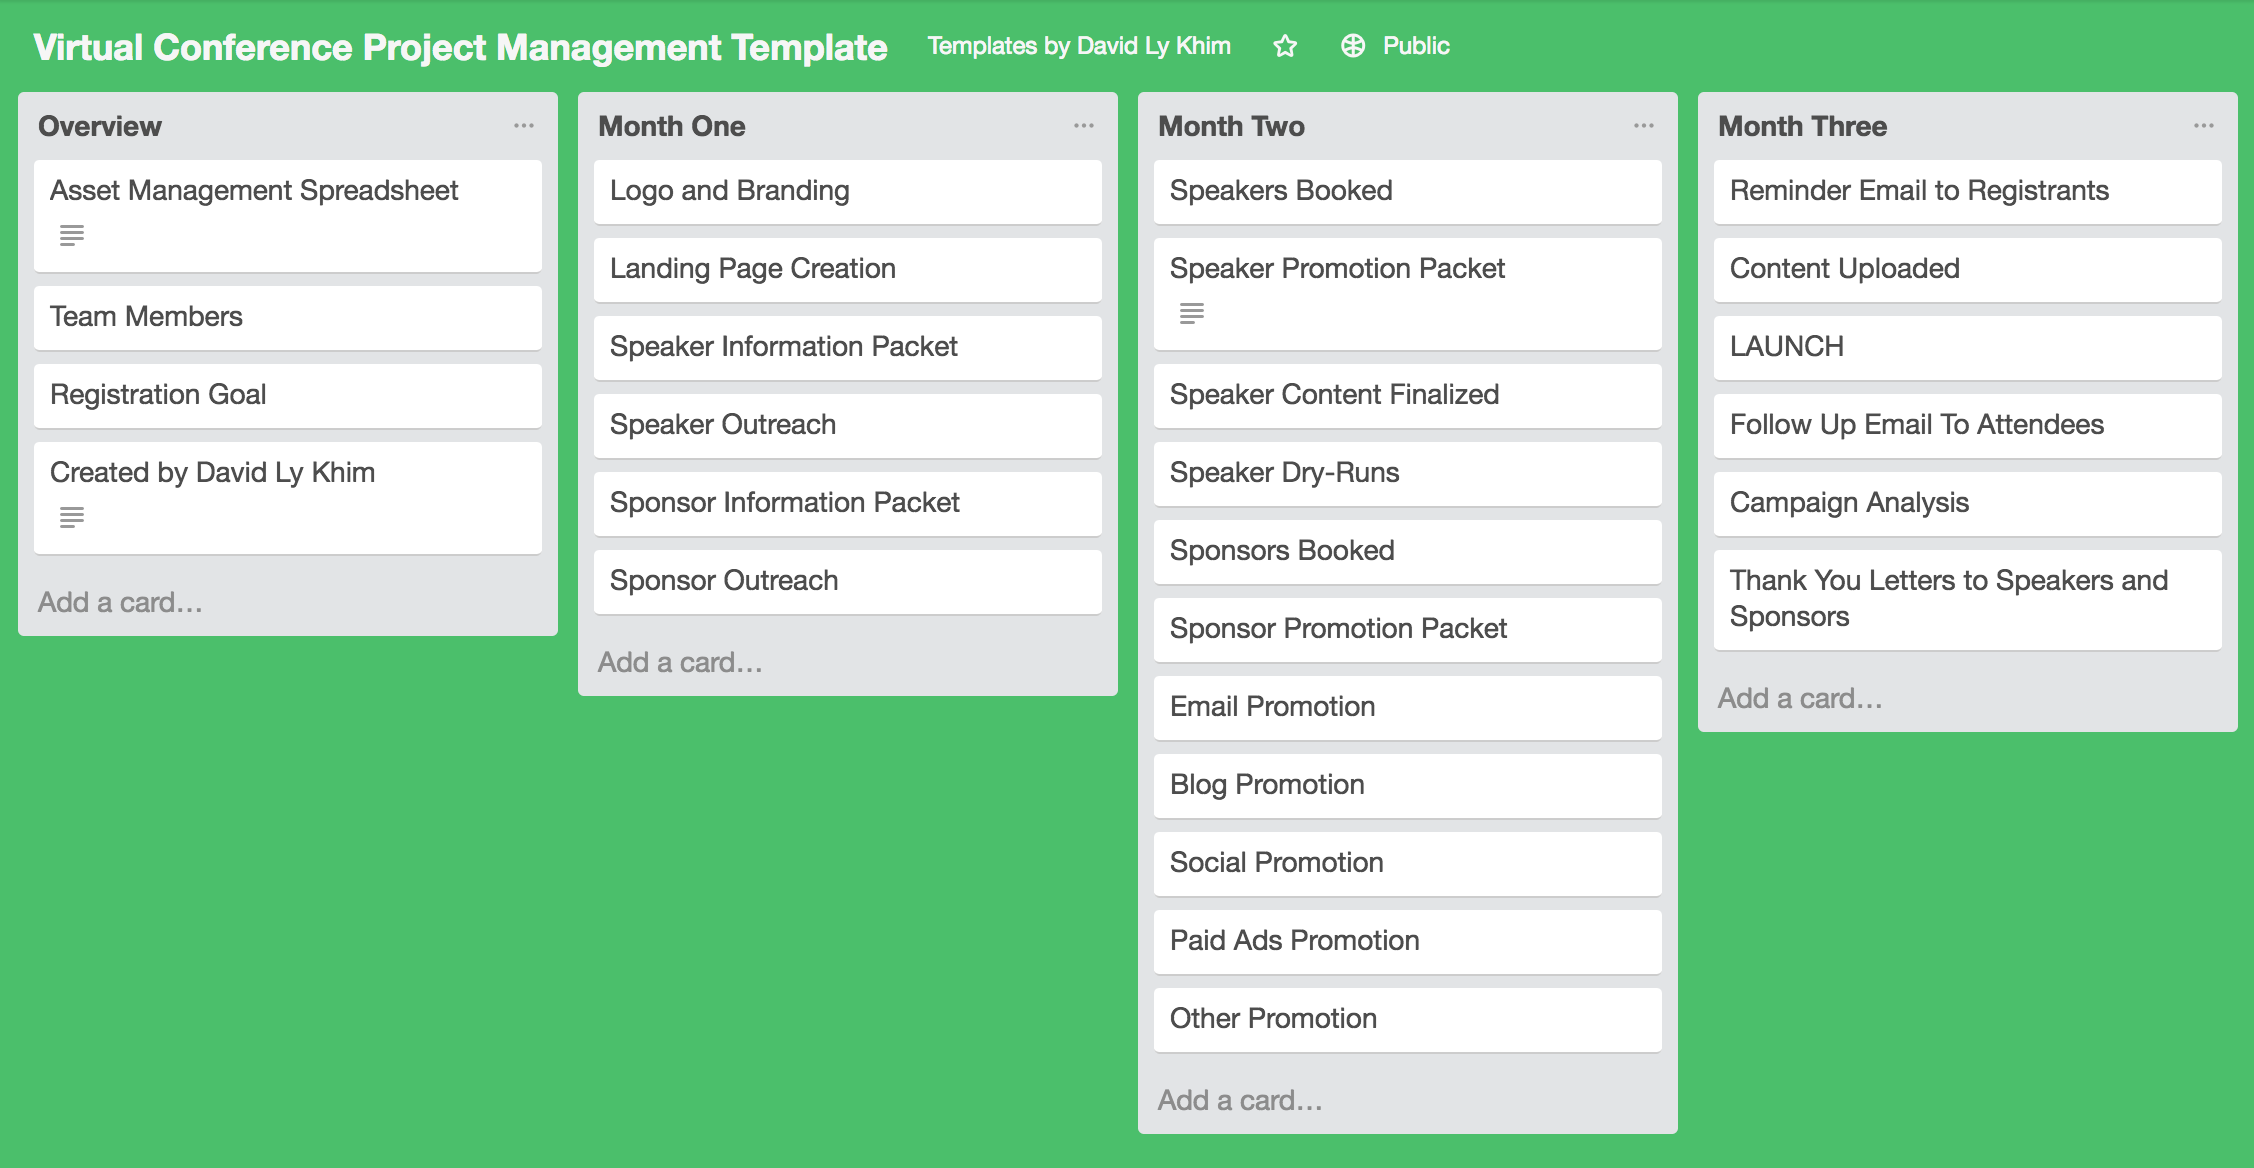 virtual-conference-how-to-host-project-management-trello-template-sample.png